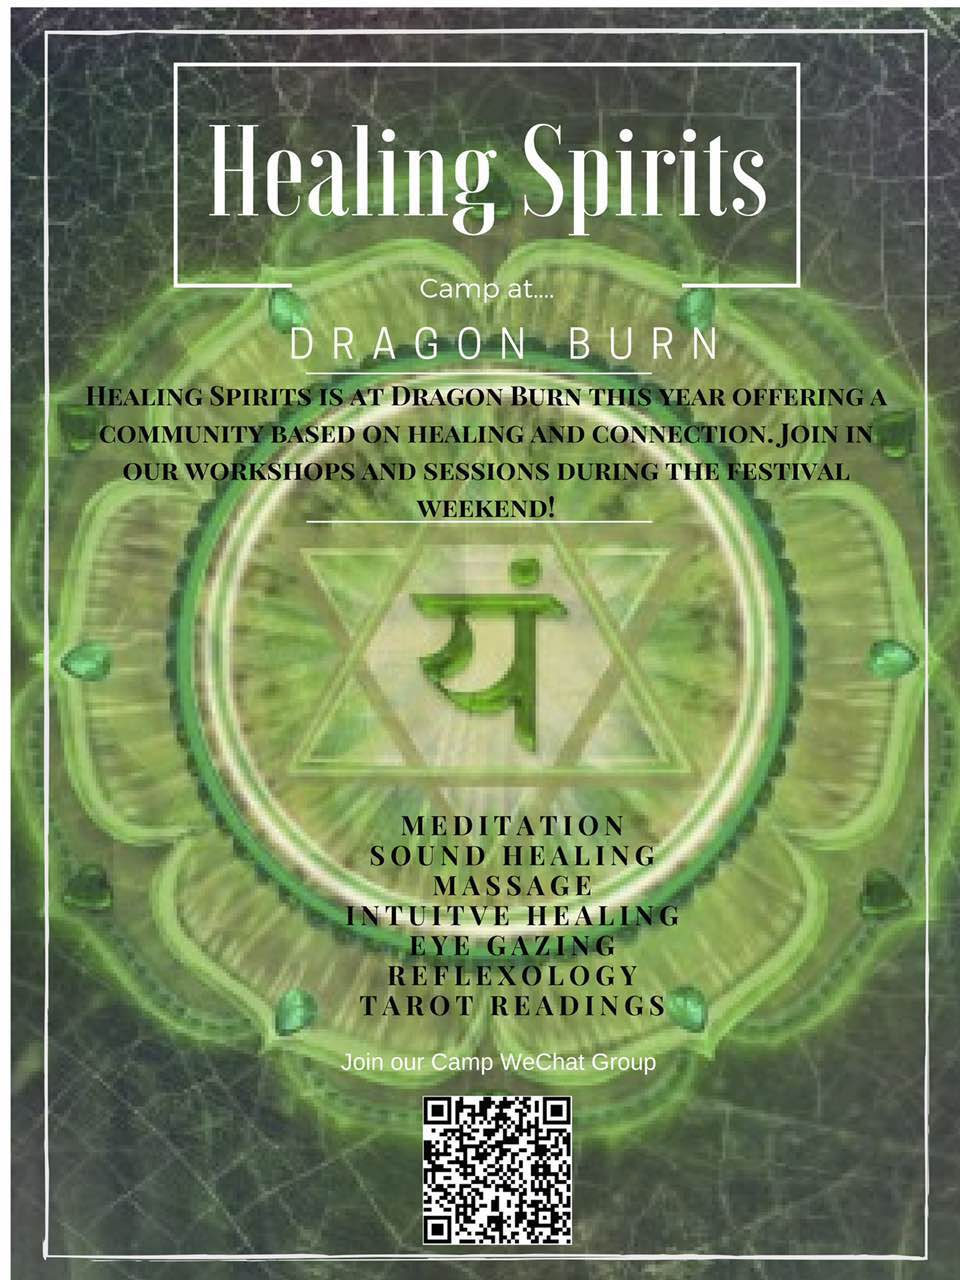 Healing Spirits Workshops